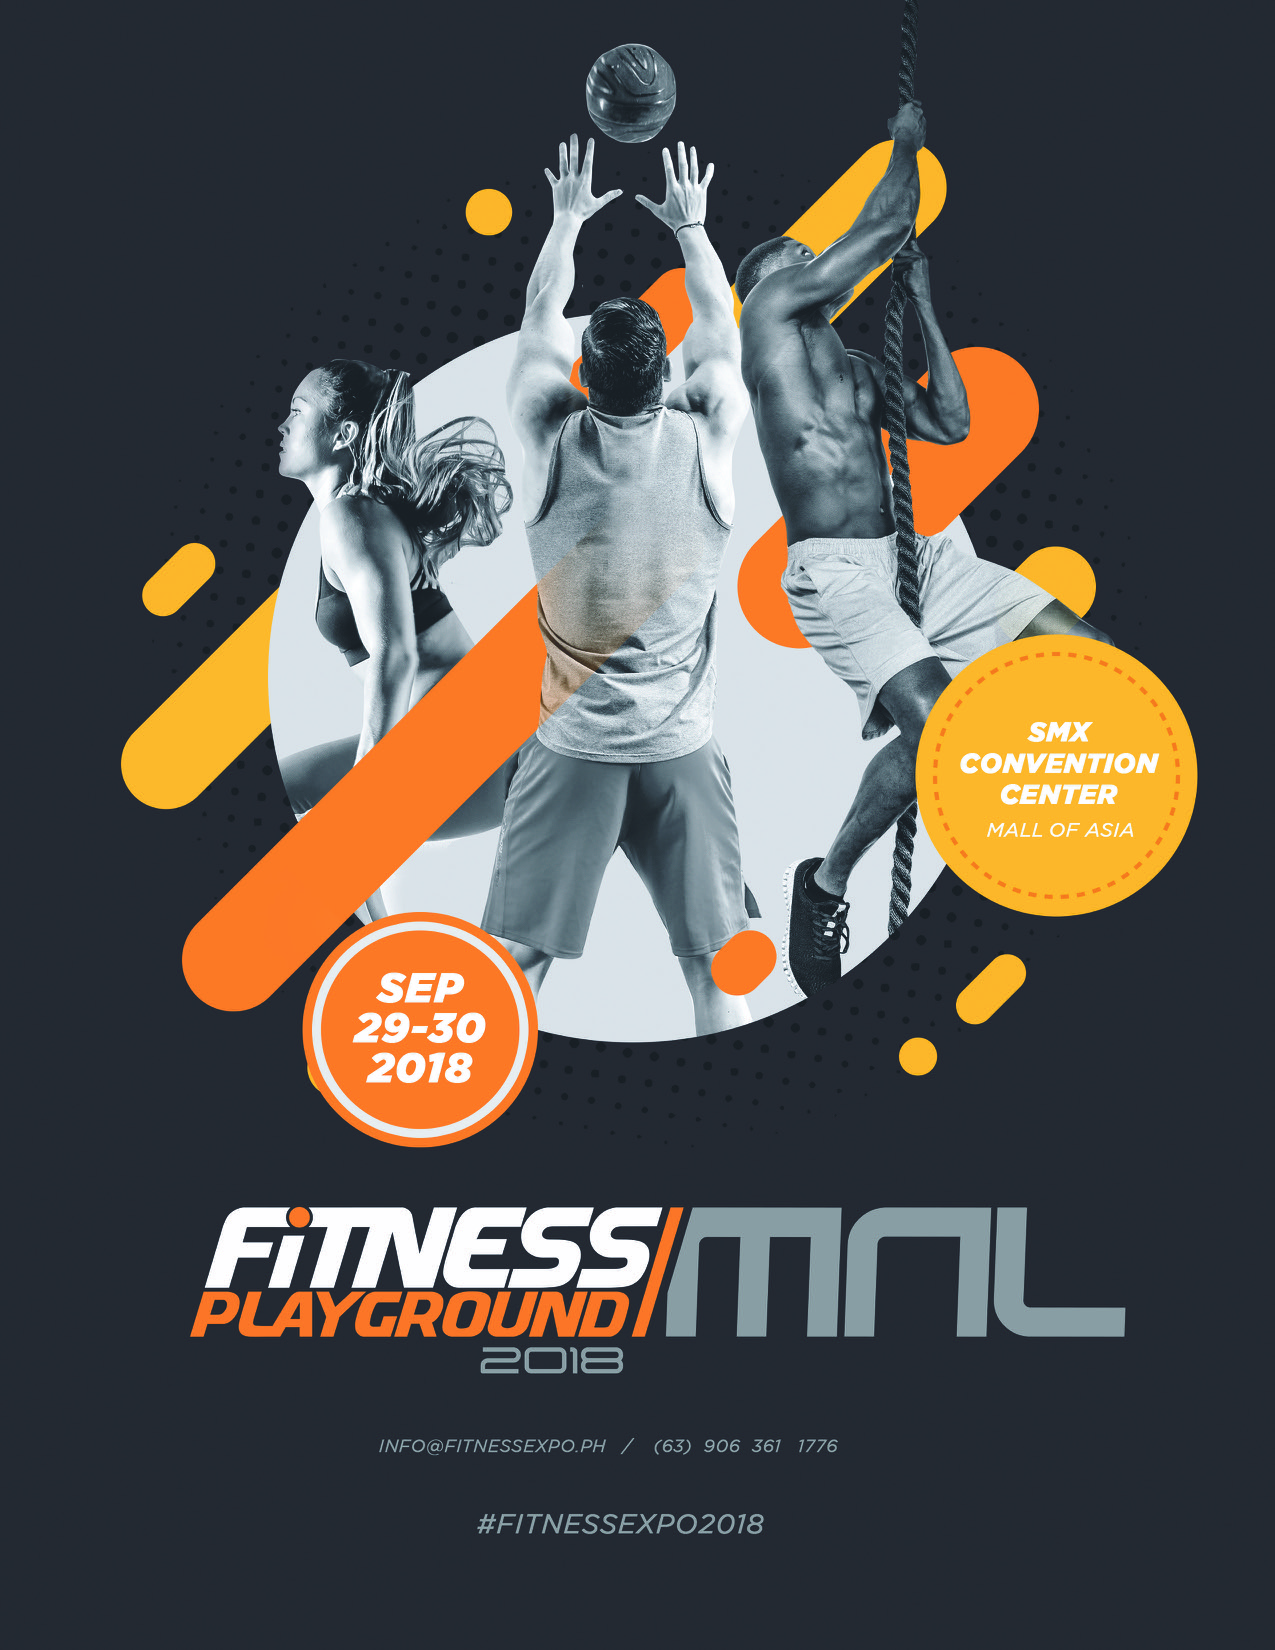 Be Ready for Fitness Playground MNL 2018